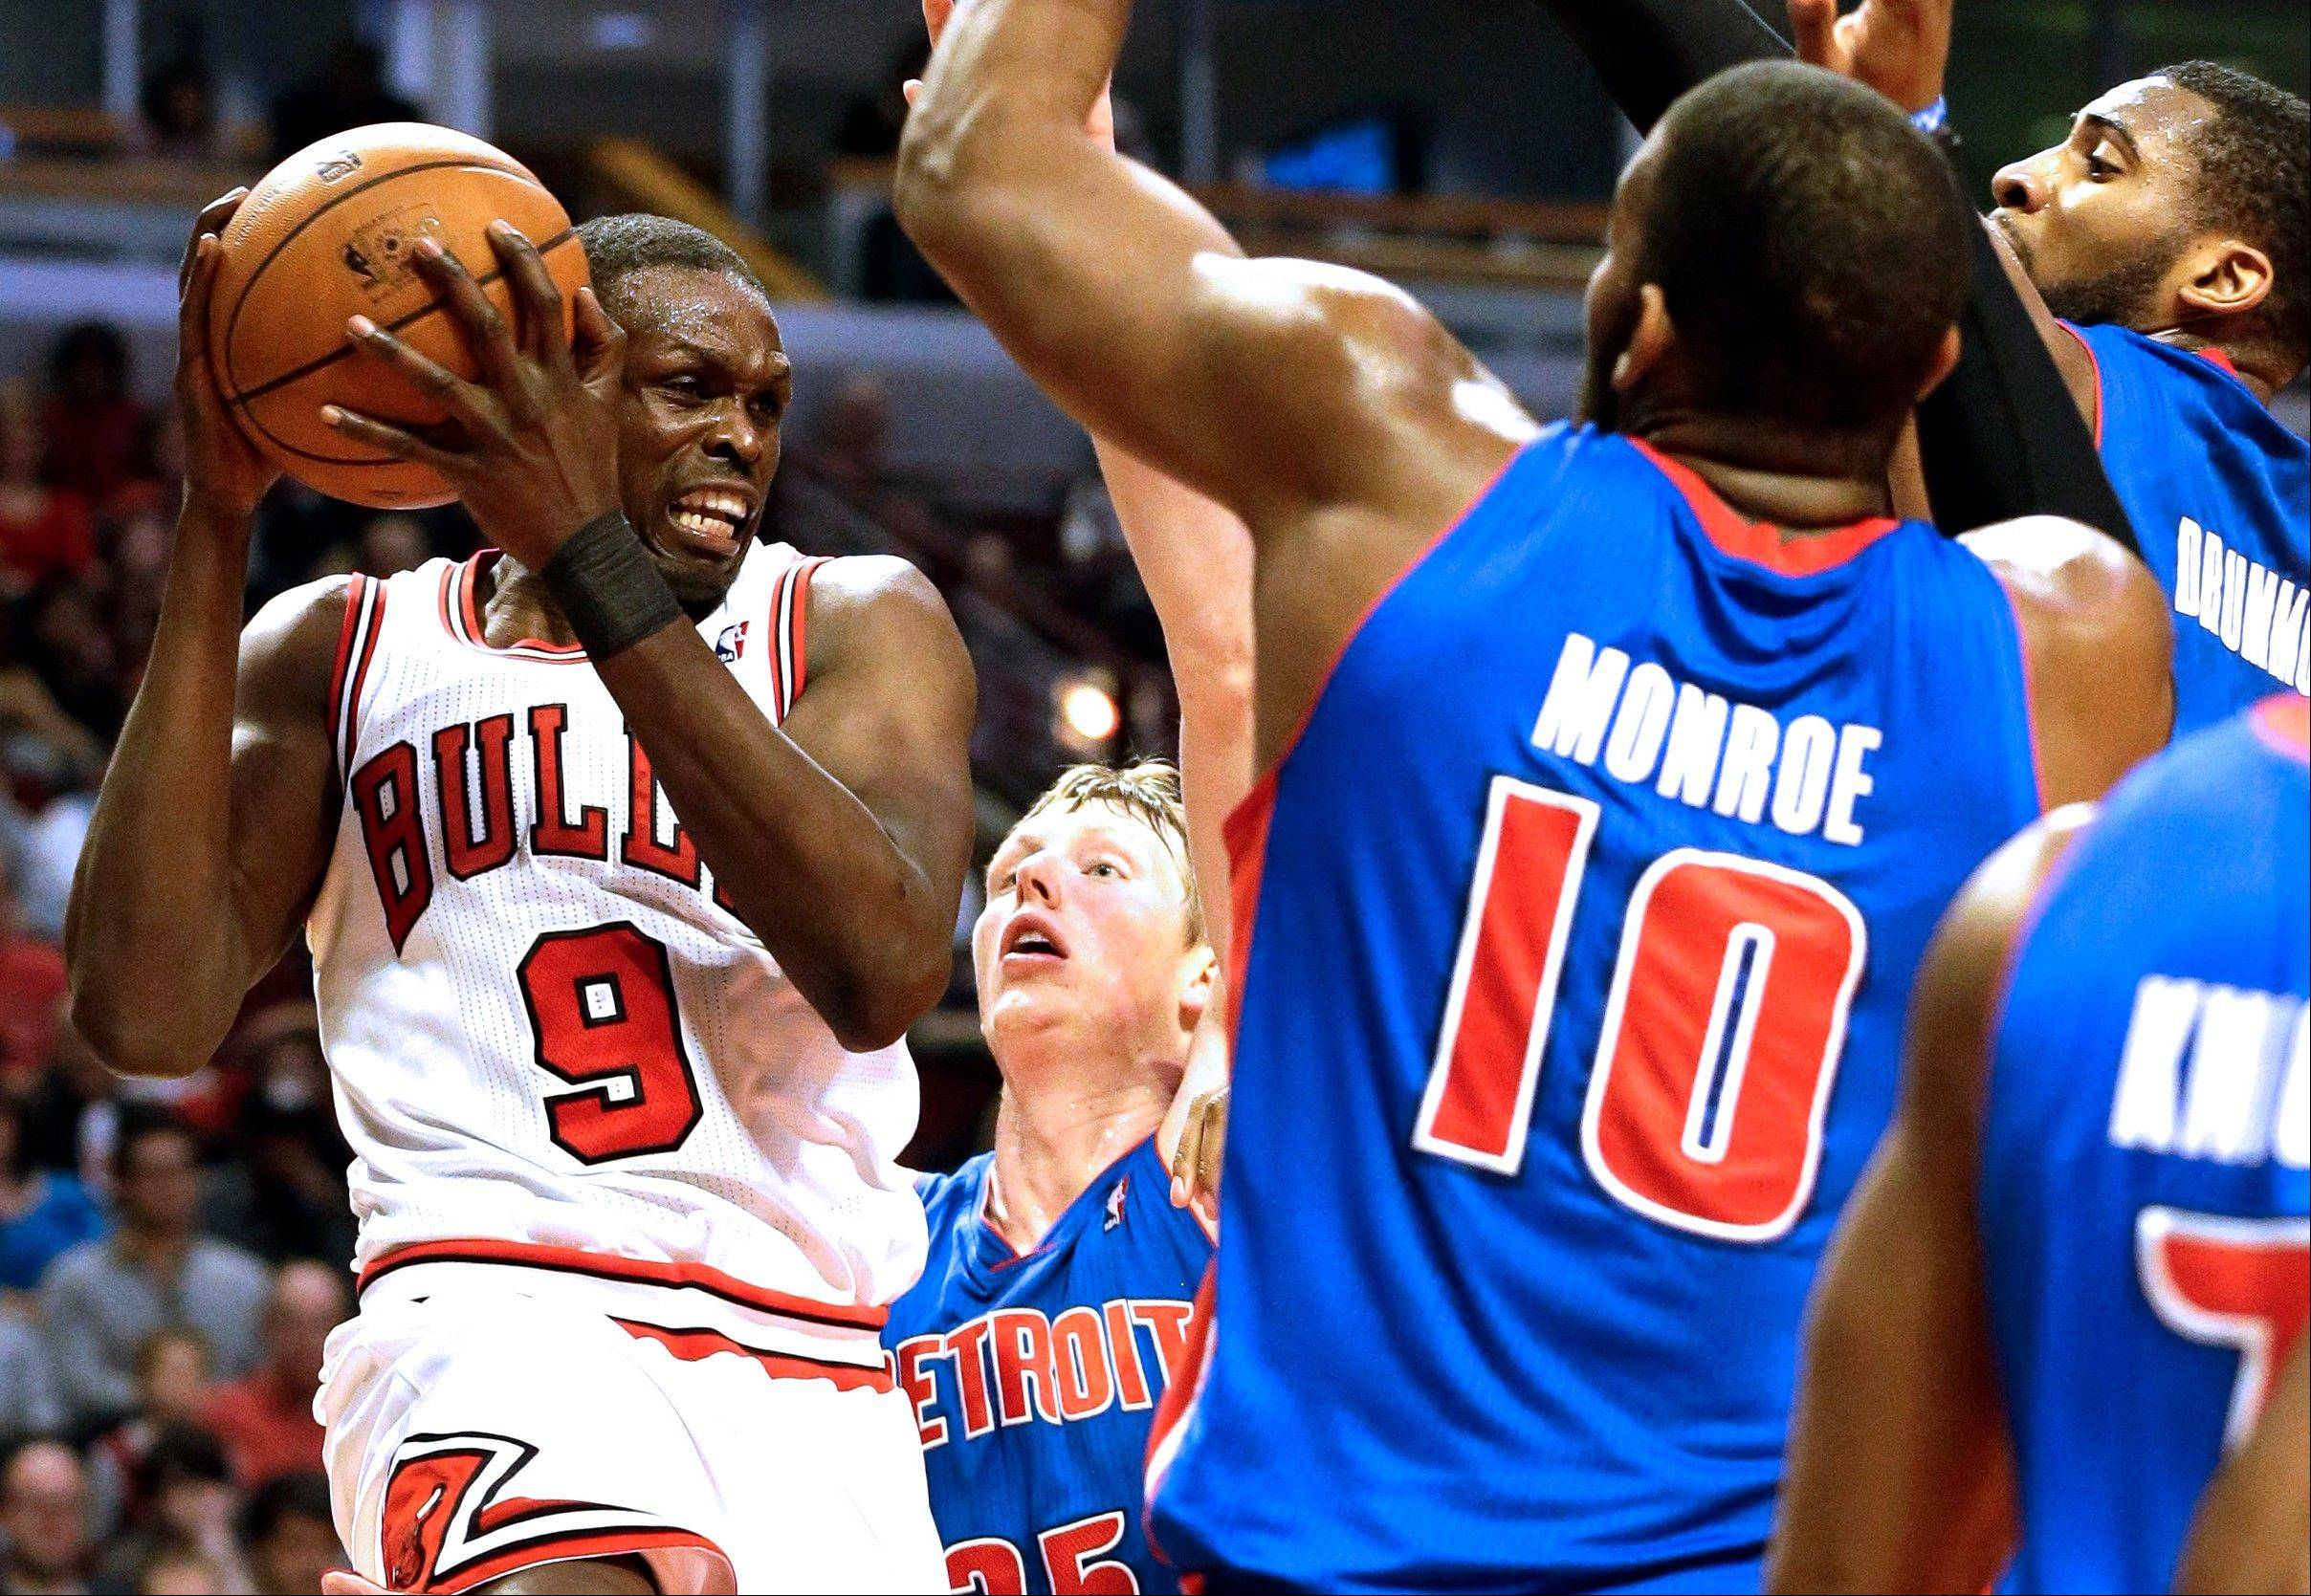 Luol Deng drives to the basket Sunday night on his way to 28 points in the Bulls� victory over the Pistons.